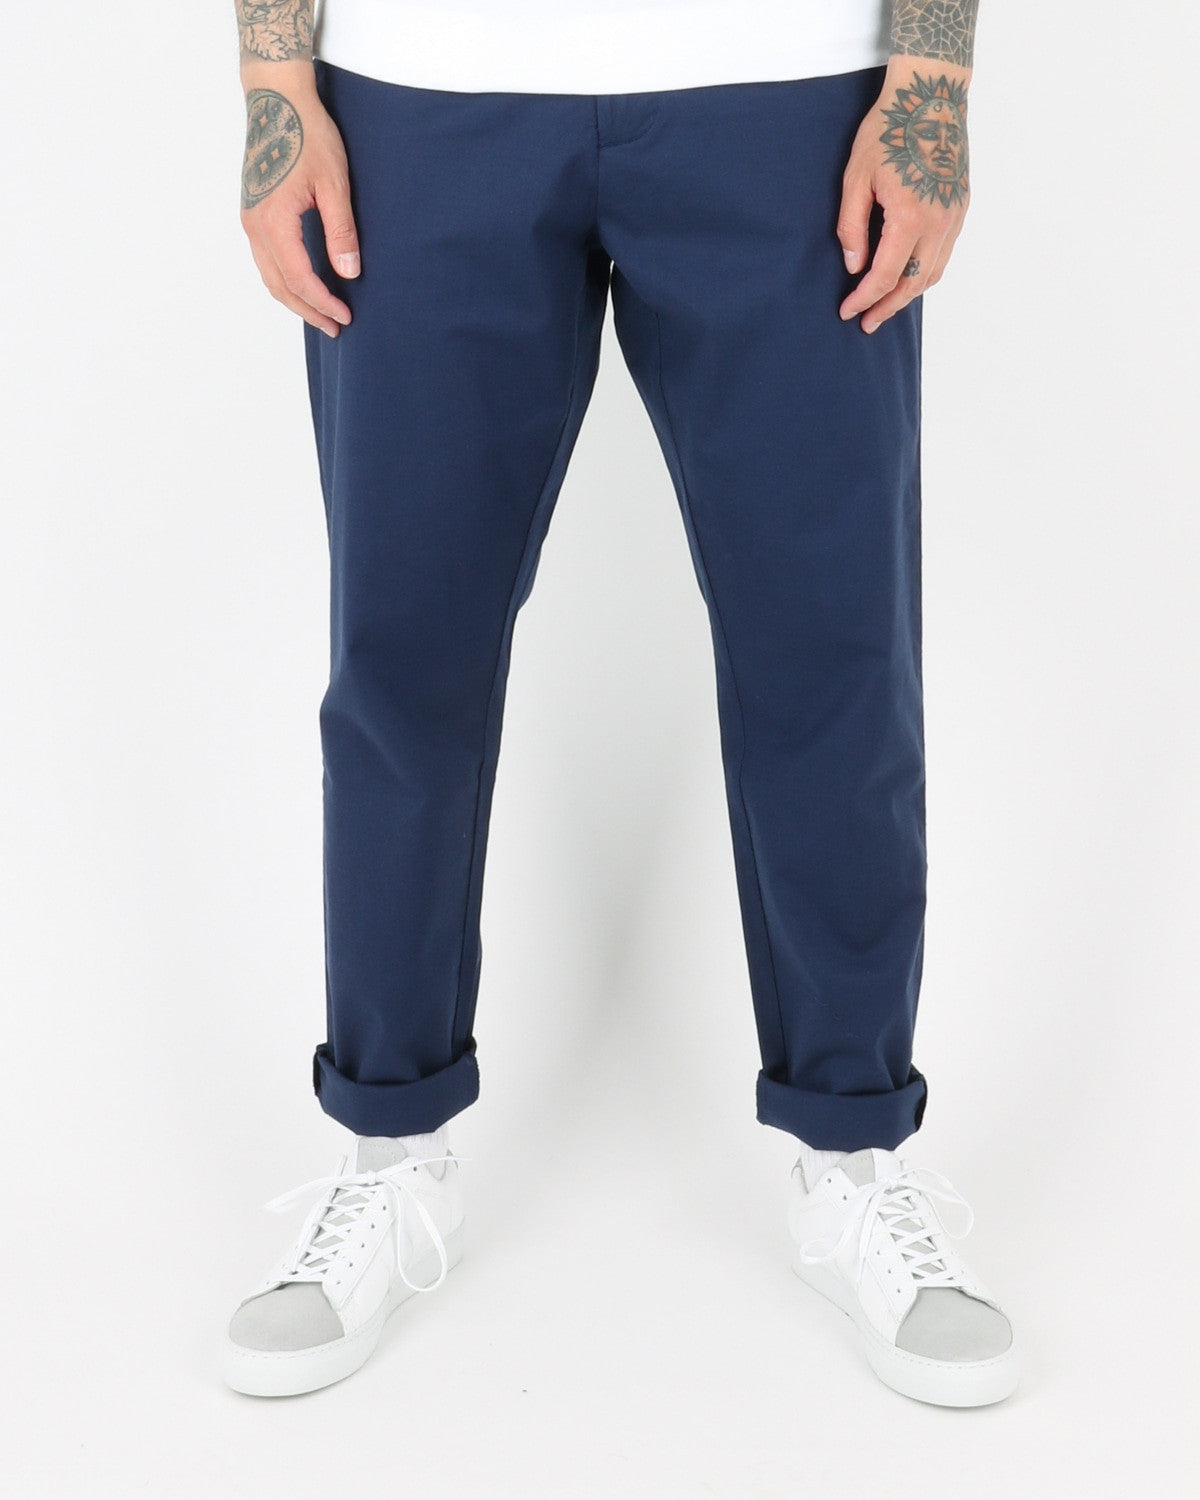 journal clothing_sea drape pants_navy_view_1_2